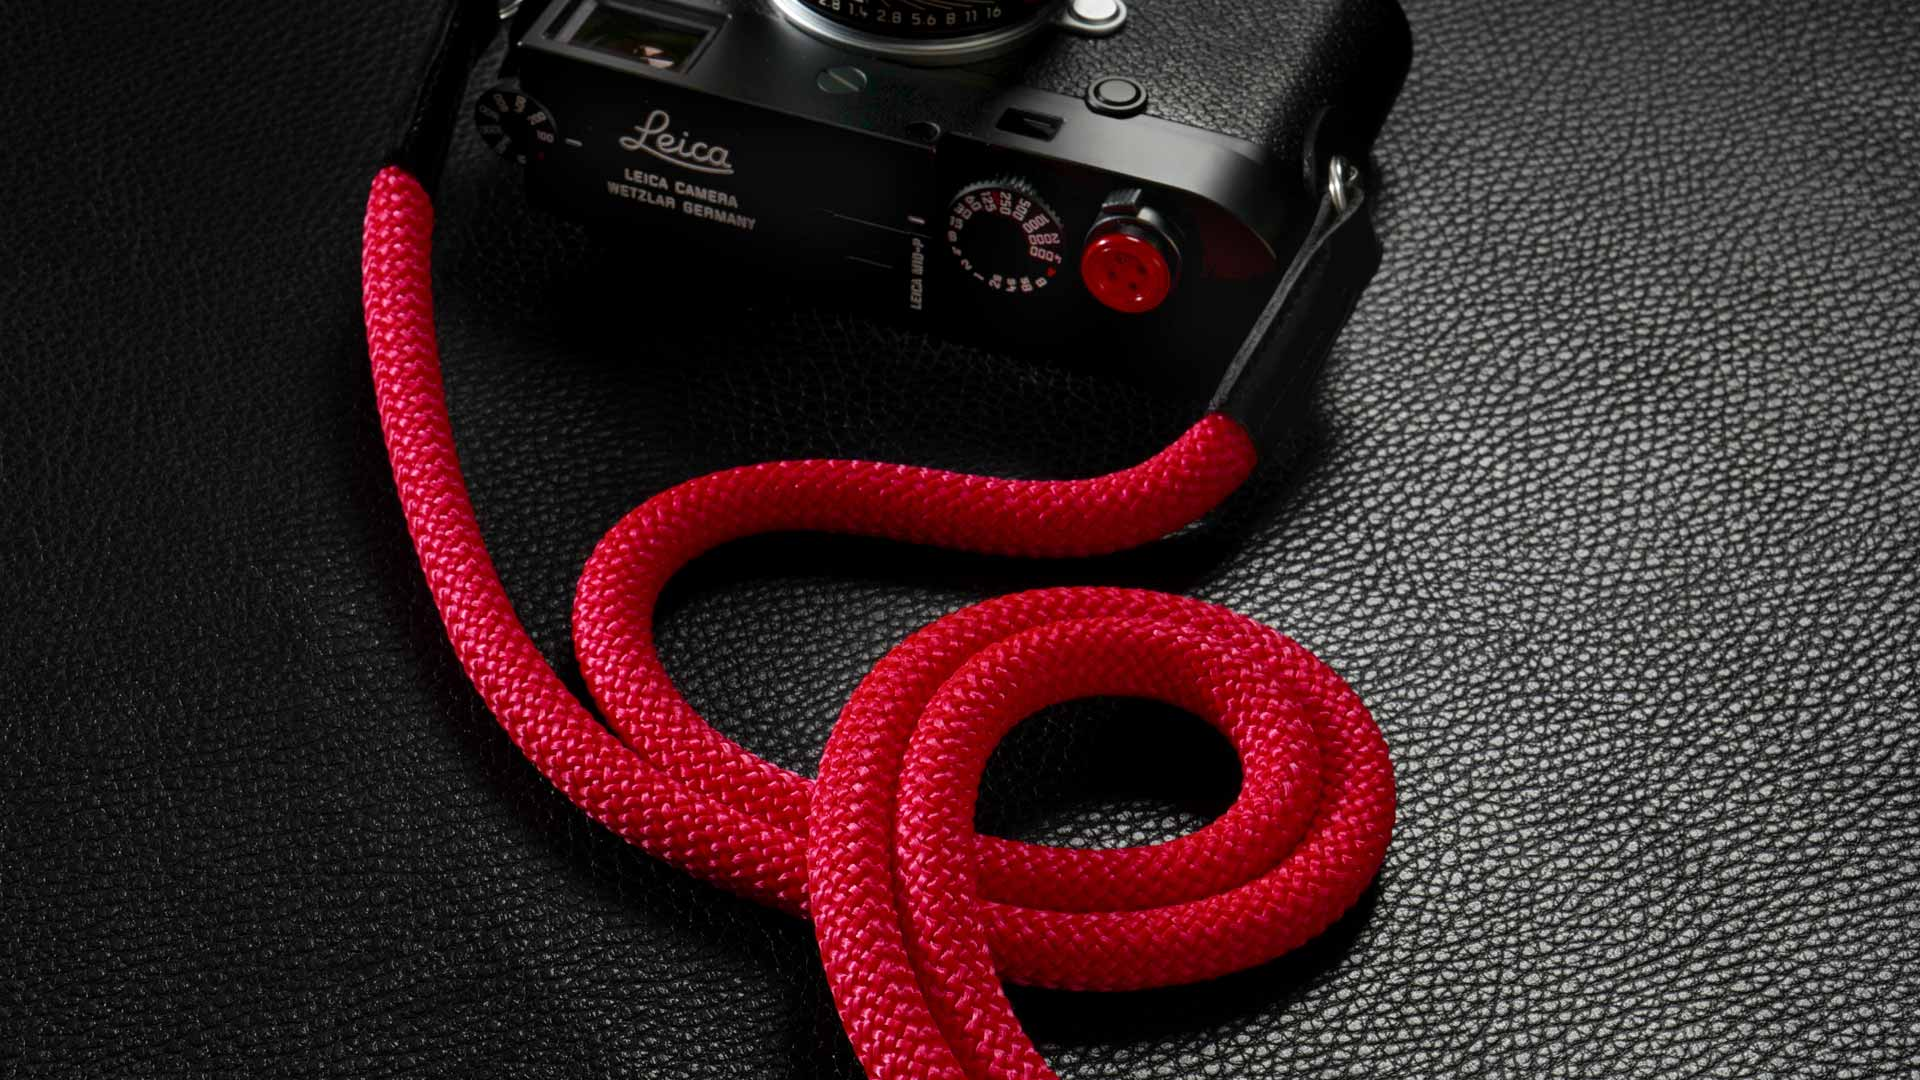 snake strap, rope strap, classic strap, rope camera strap, handmade leather camera strap, leica camera strap, mirrorless camera strap, handmade camera strap, dslr camera strap, red camera strap